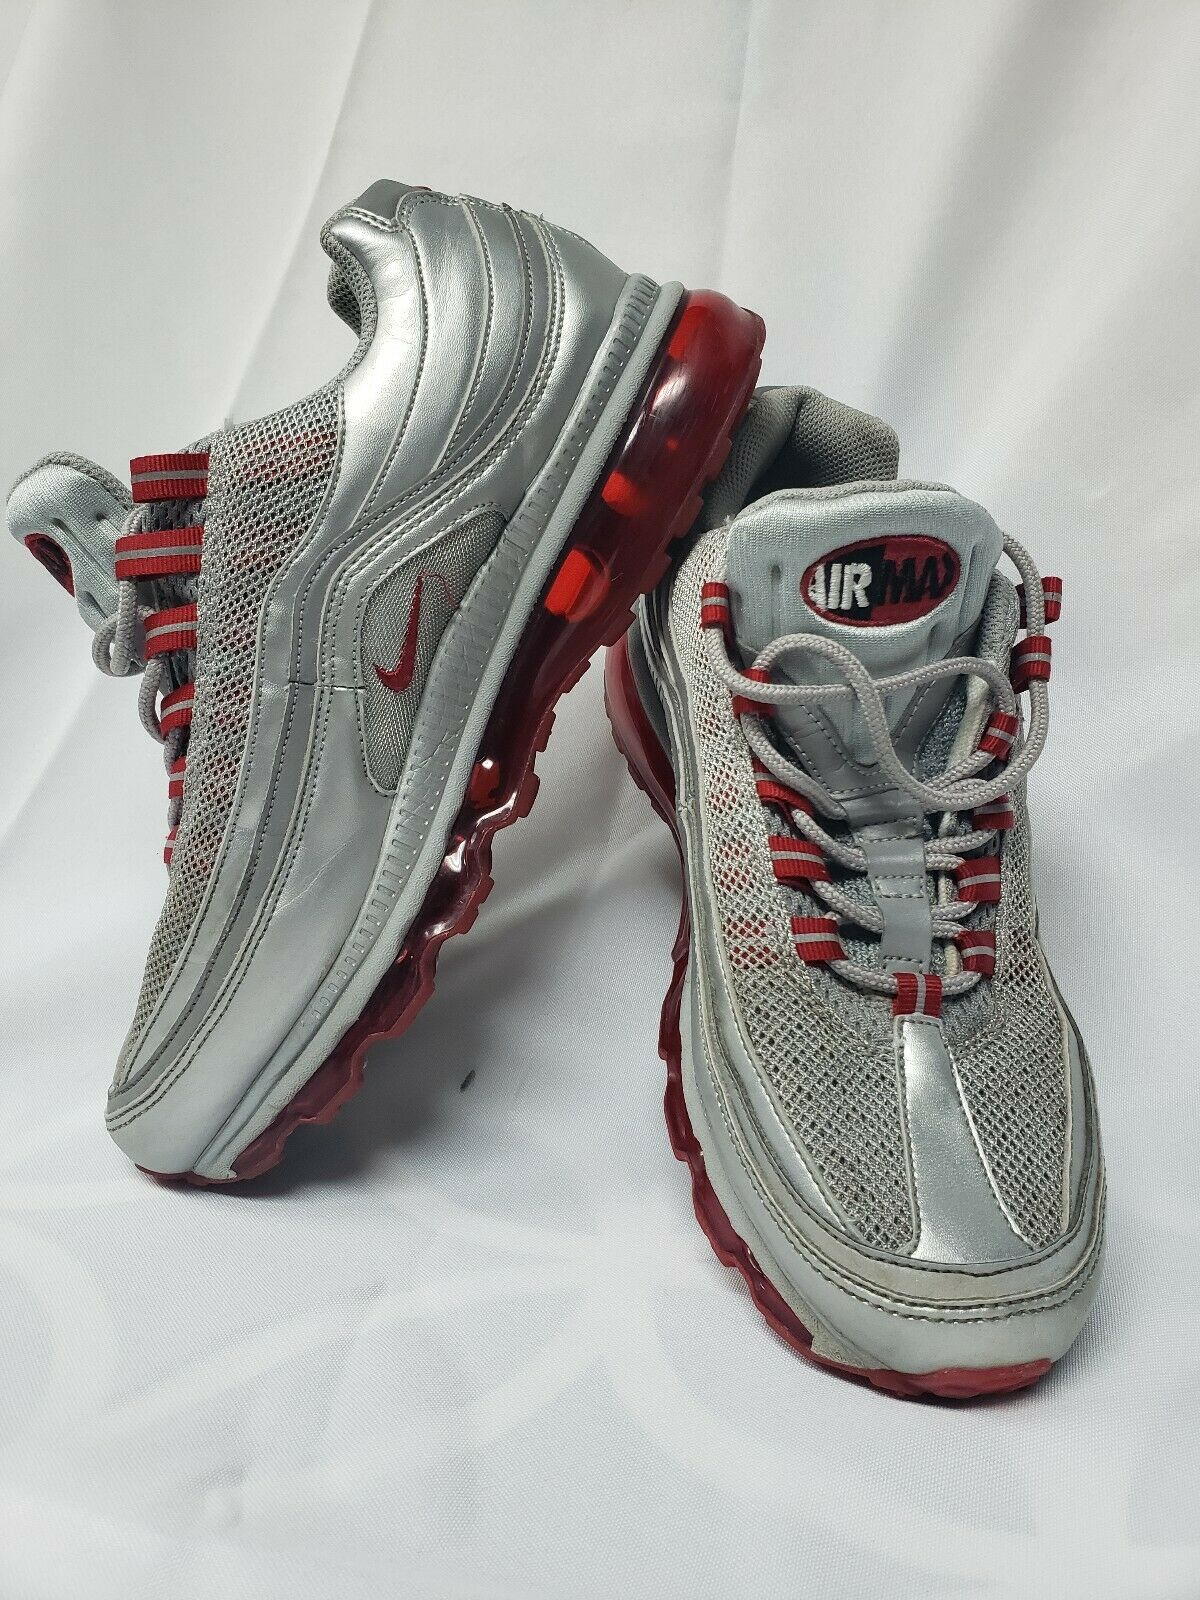 Nike Air Max 24-7 Grey Red Running Sneakers Men's Size 8  397252-008